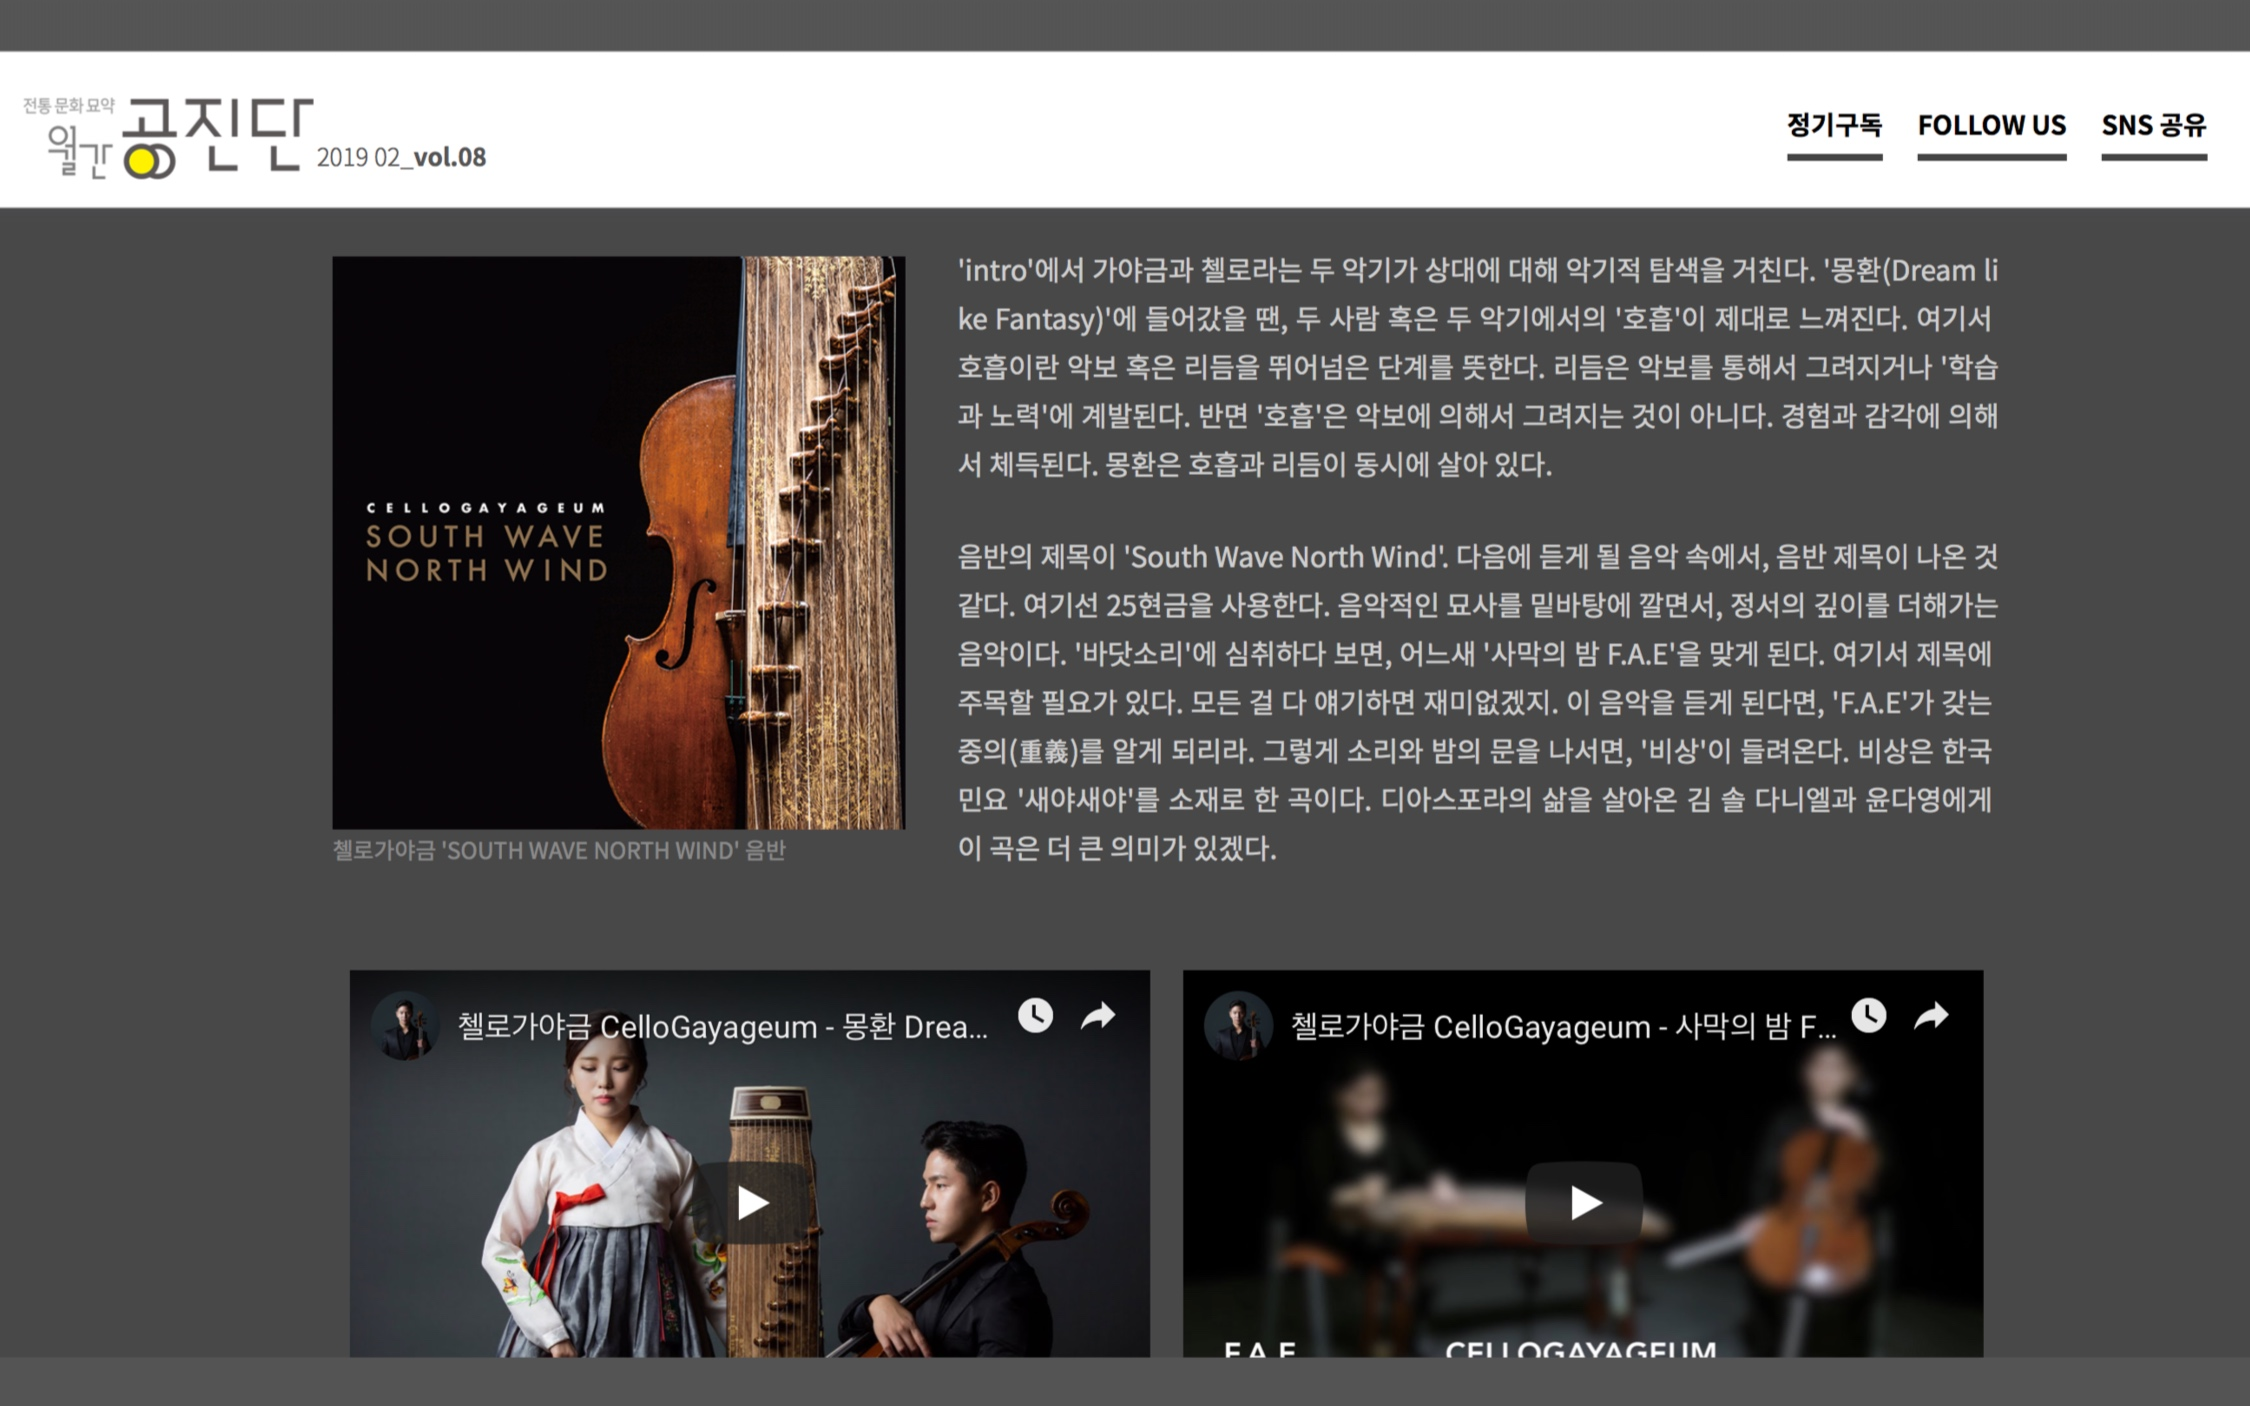 Web Magazine Article [Korean]   A Korean article from the 02/2019 edition of 공진당 about CelloGayageum and their music.  by Jung-Gang Yoon - music critic 음악평론가 윤중강